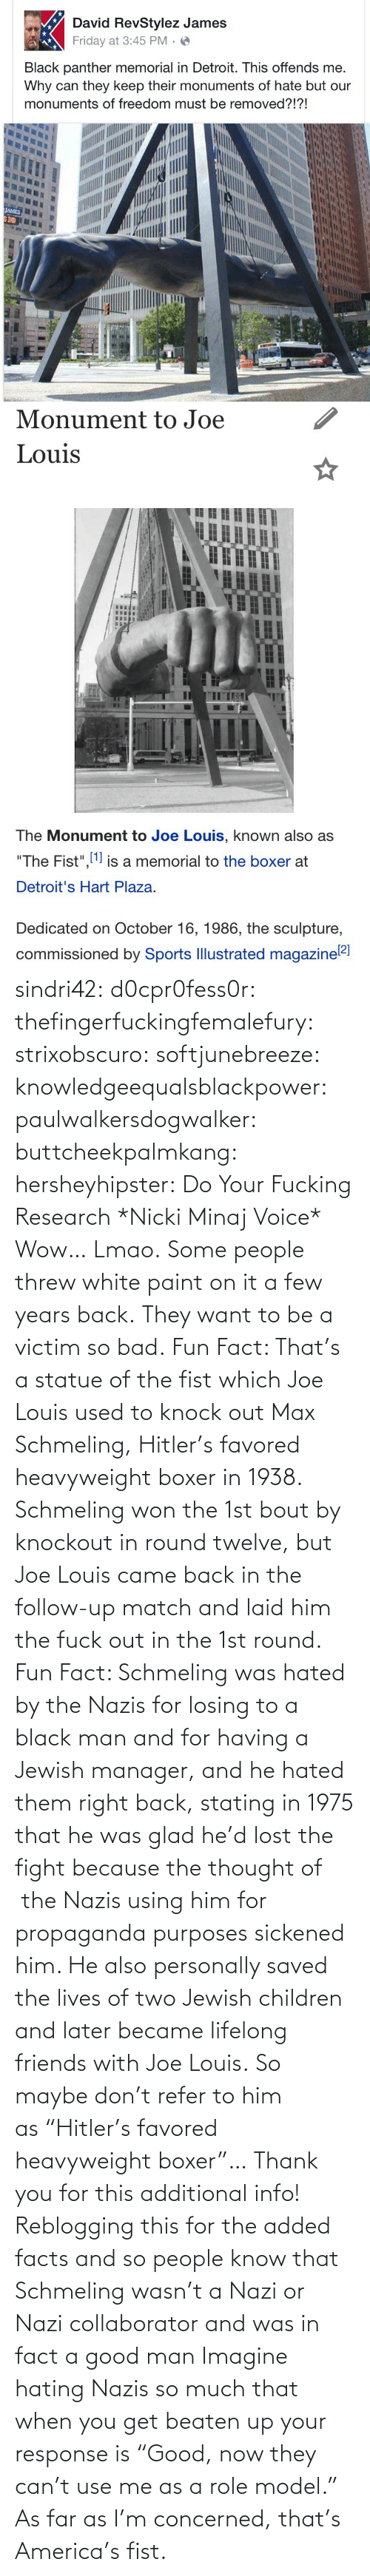 "now: sindri42:  d0cpr0fess0r:  thefingerfuckingfemalefury:  strixobscuro:  softjunebreeze:  knowledgeequalsblackpower:  paulwalkersdogwalker:   buttcheekpalmkang:   hersheyhipster:  Do Your Fucking Research *Nicki Minaj Voice*    Wow… Lmao.   Some people threw white paint on it a few years back.   They want to be a victim so bad.  Fun Fact: That's a statue of the fist which Joe Louis used to knock out Max Schmeling, Hitler's favored heavyweight boxer in 1938. Schmeling won the 1st bout by knockout in round twelve, but Joe Louis came back in the follow-up match and laid him the fuck out in the 1st round.  Fun Fact: Schmeling was hated by the Nazis for losing to a black man and for having a Jewish manager, and he hated them right back, stating in 1975 that he was glad he'd lost the fight because the thought of  the Nazis using him for propaganda purposes sickened him. He also personally saved the lives of two Jewish children and later became lifelong friends with Joe Louis. So maybe don't refer to him as ""Hitler's favored heavyweight boxer""…  Thank you for this additional info! Reblogging this for the added facts and so people know that Schmeling wasn't a Nazi or Nazi collaborator and was in fact a good man   Imagine hating Nazis so much that when you get beaten up your response is ""Good, now they can't use me as a role model.""  As far as I'm concerned, that's America's fist."